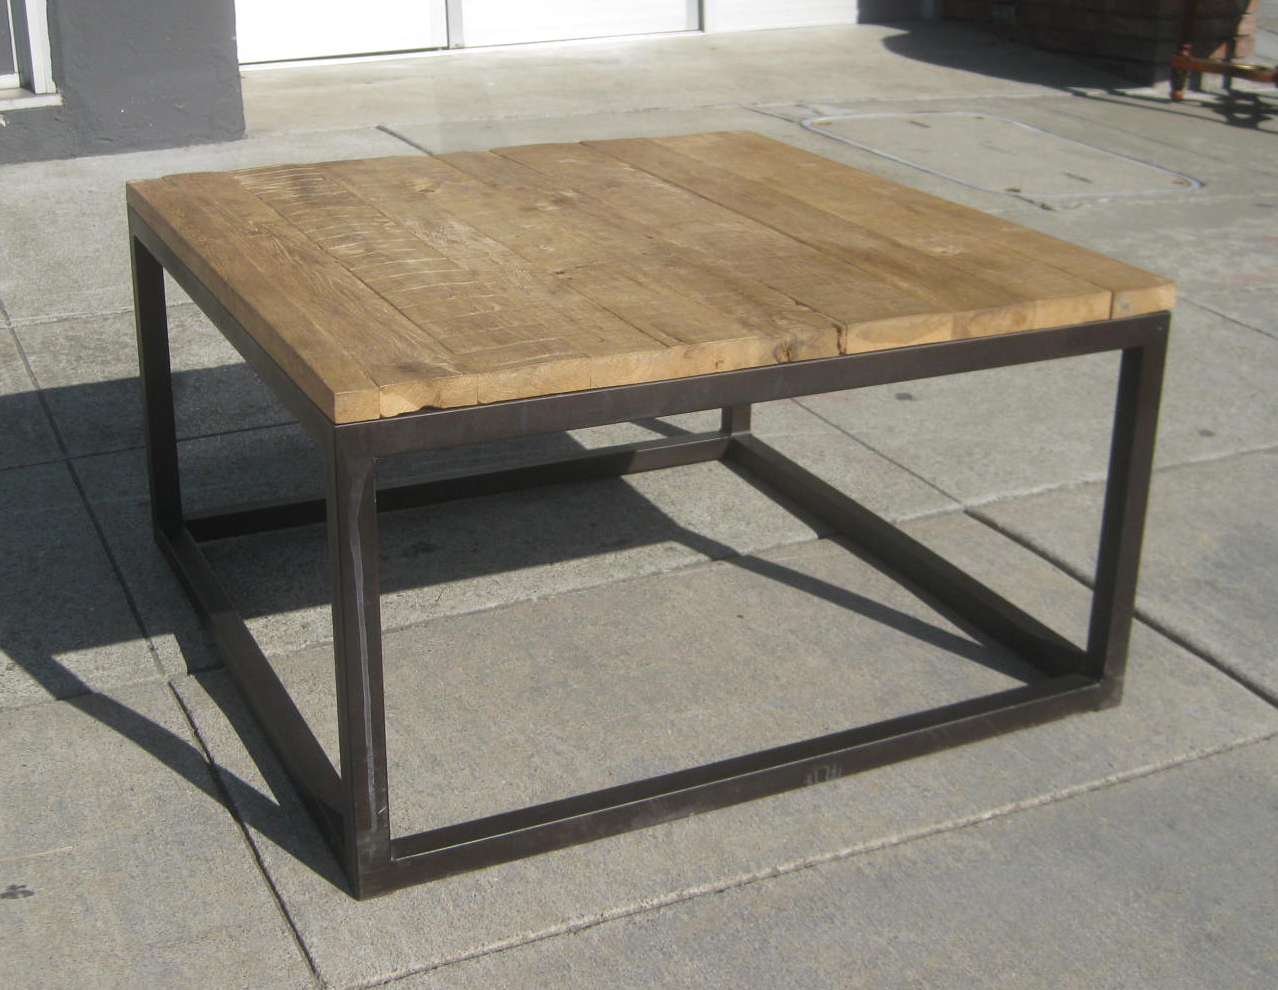 Uhuru Furniture Collectibles Sold Iron And Wood Coffee Table 50